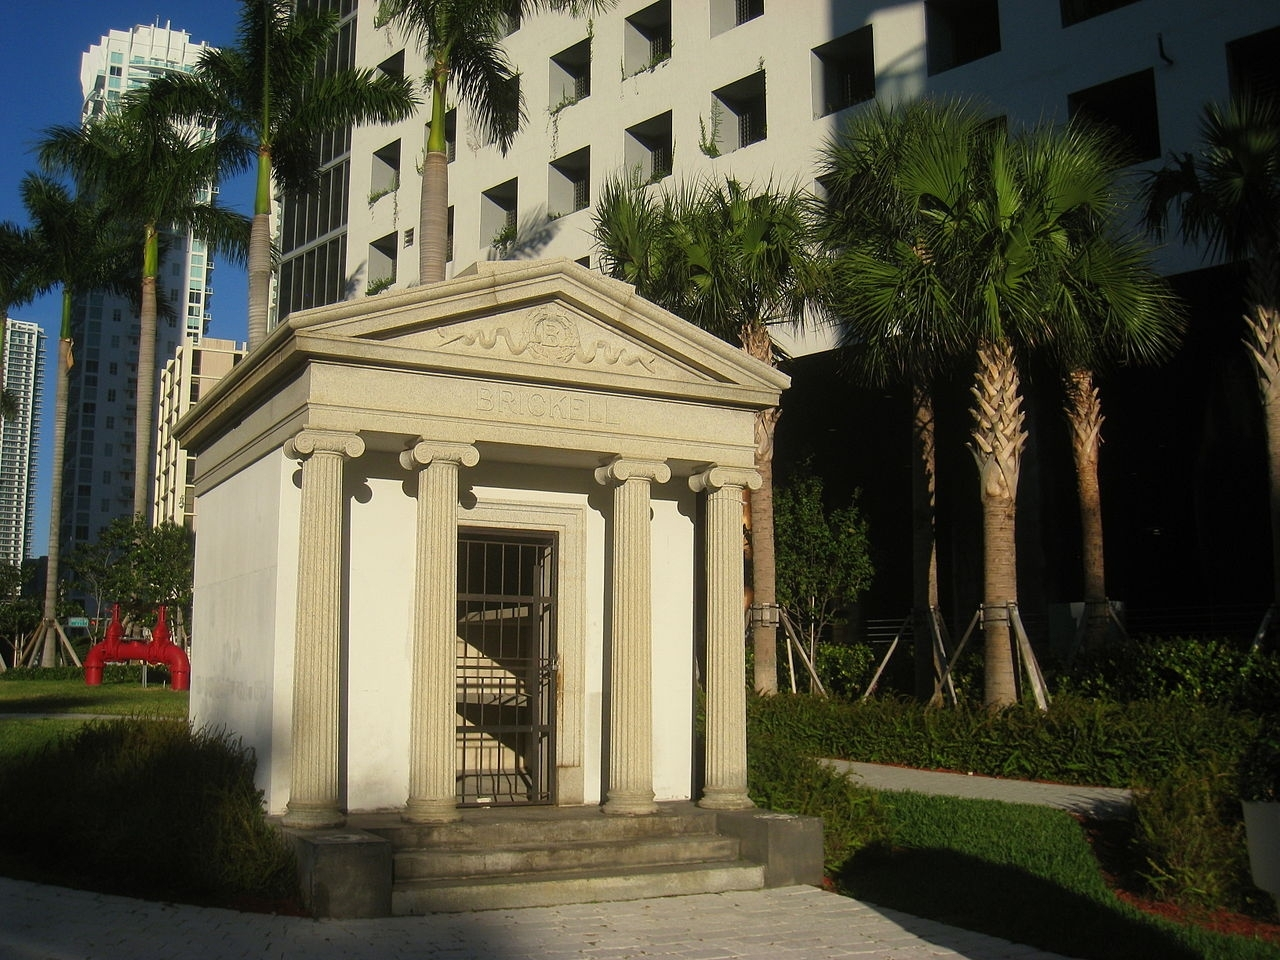 The Brickell Family Mausoleum, now empty, is the sole surviving structure from the Brickell Family. Image obtained from the Historical Marker Database.